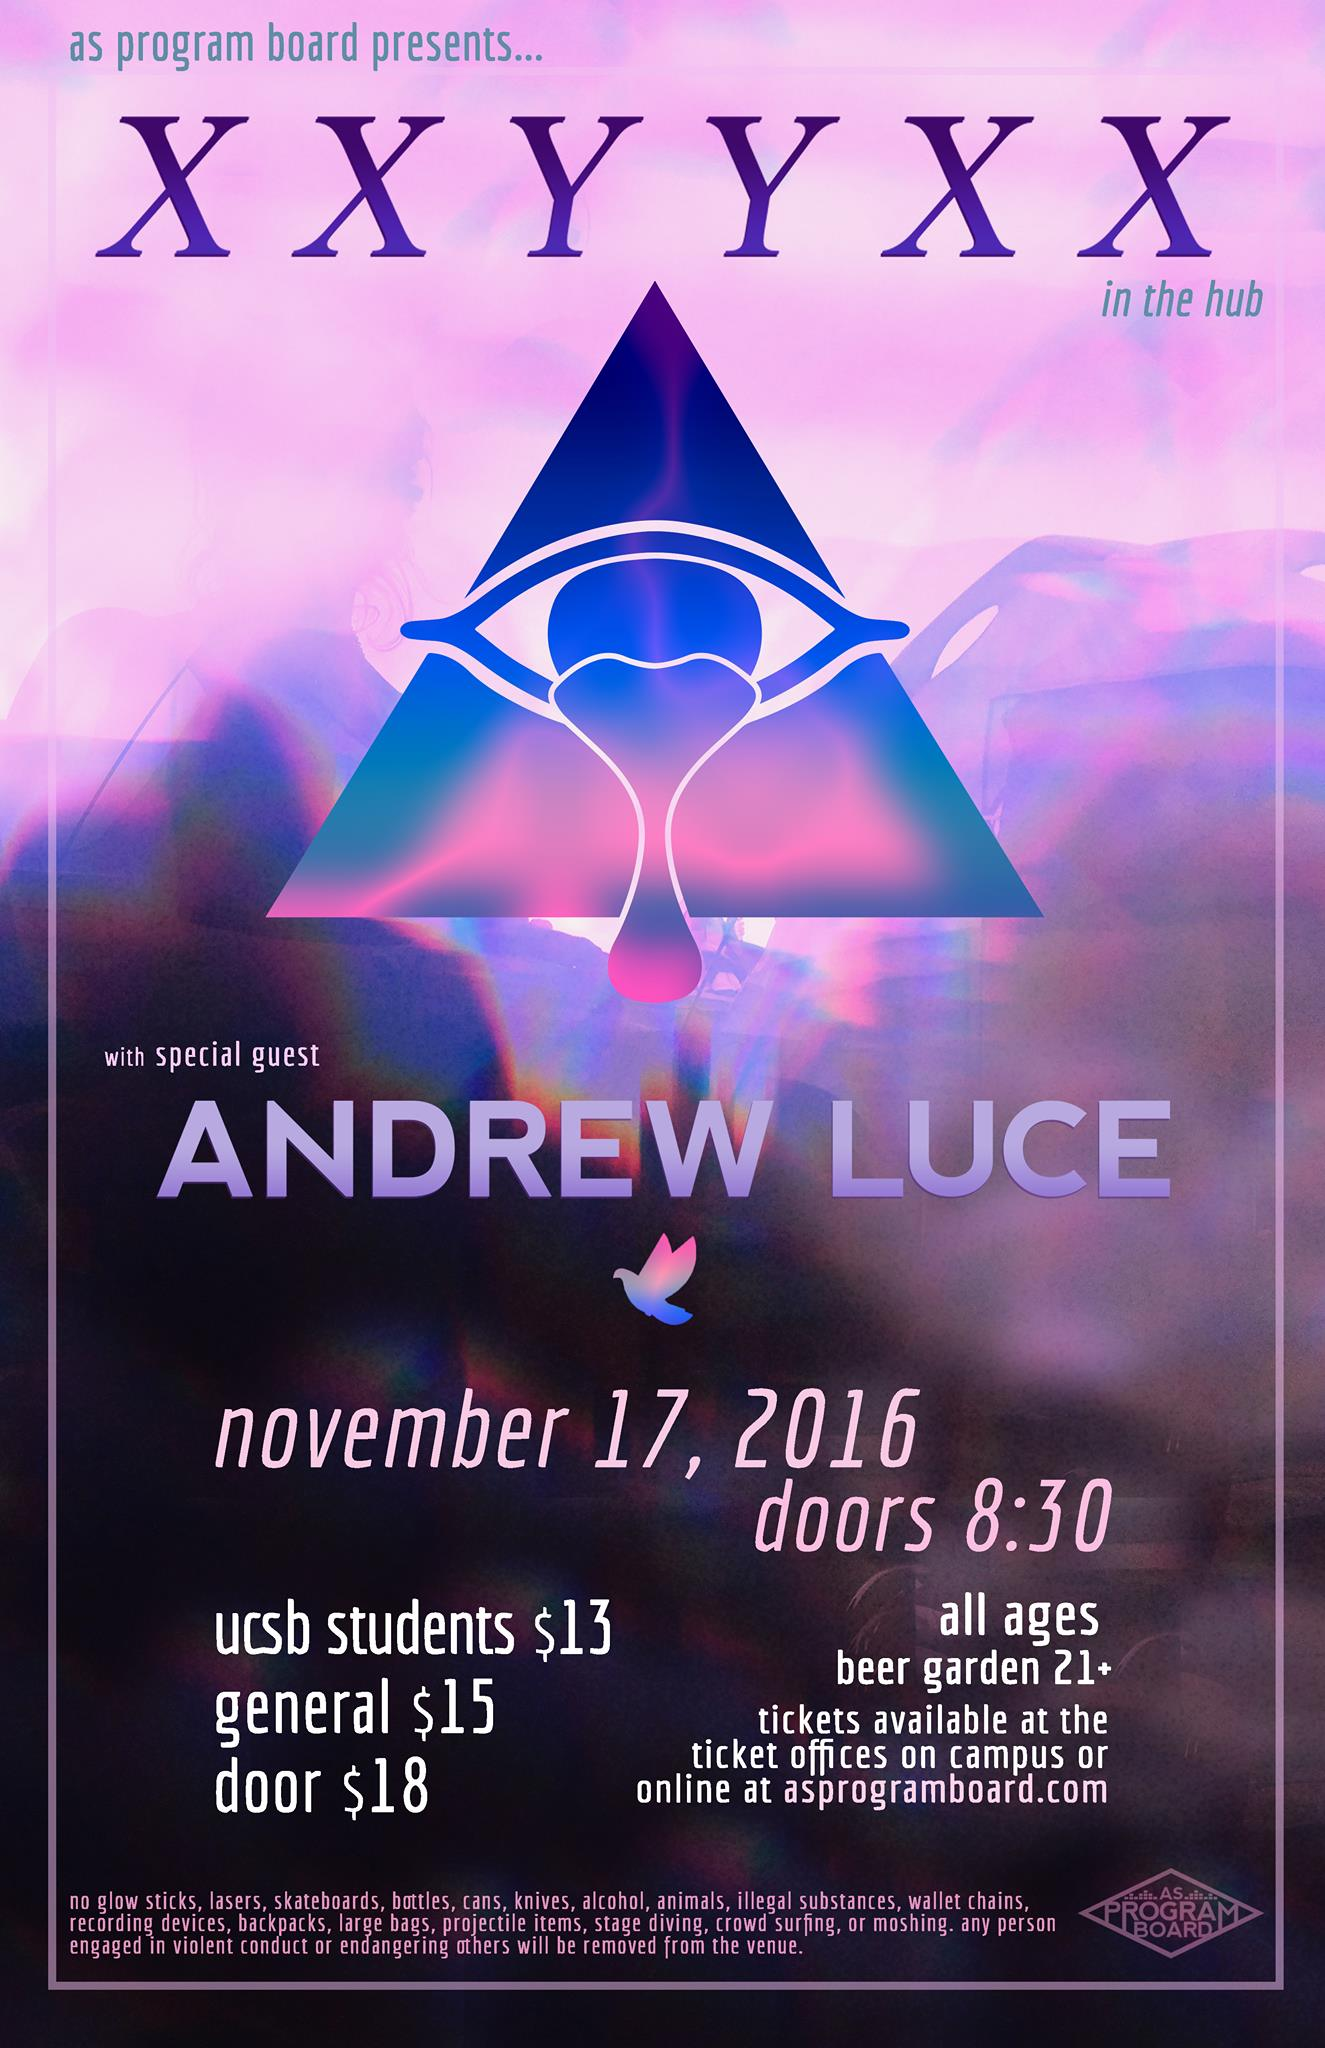 XXYYXX with special guest: Andrew Luce in The Hub